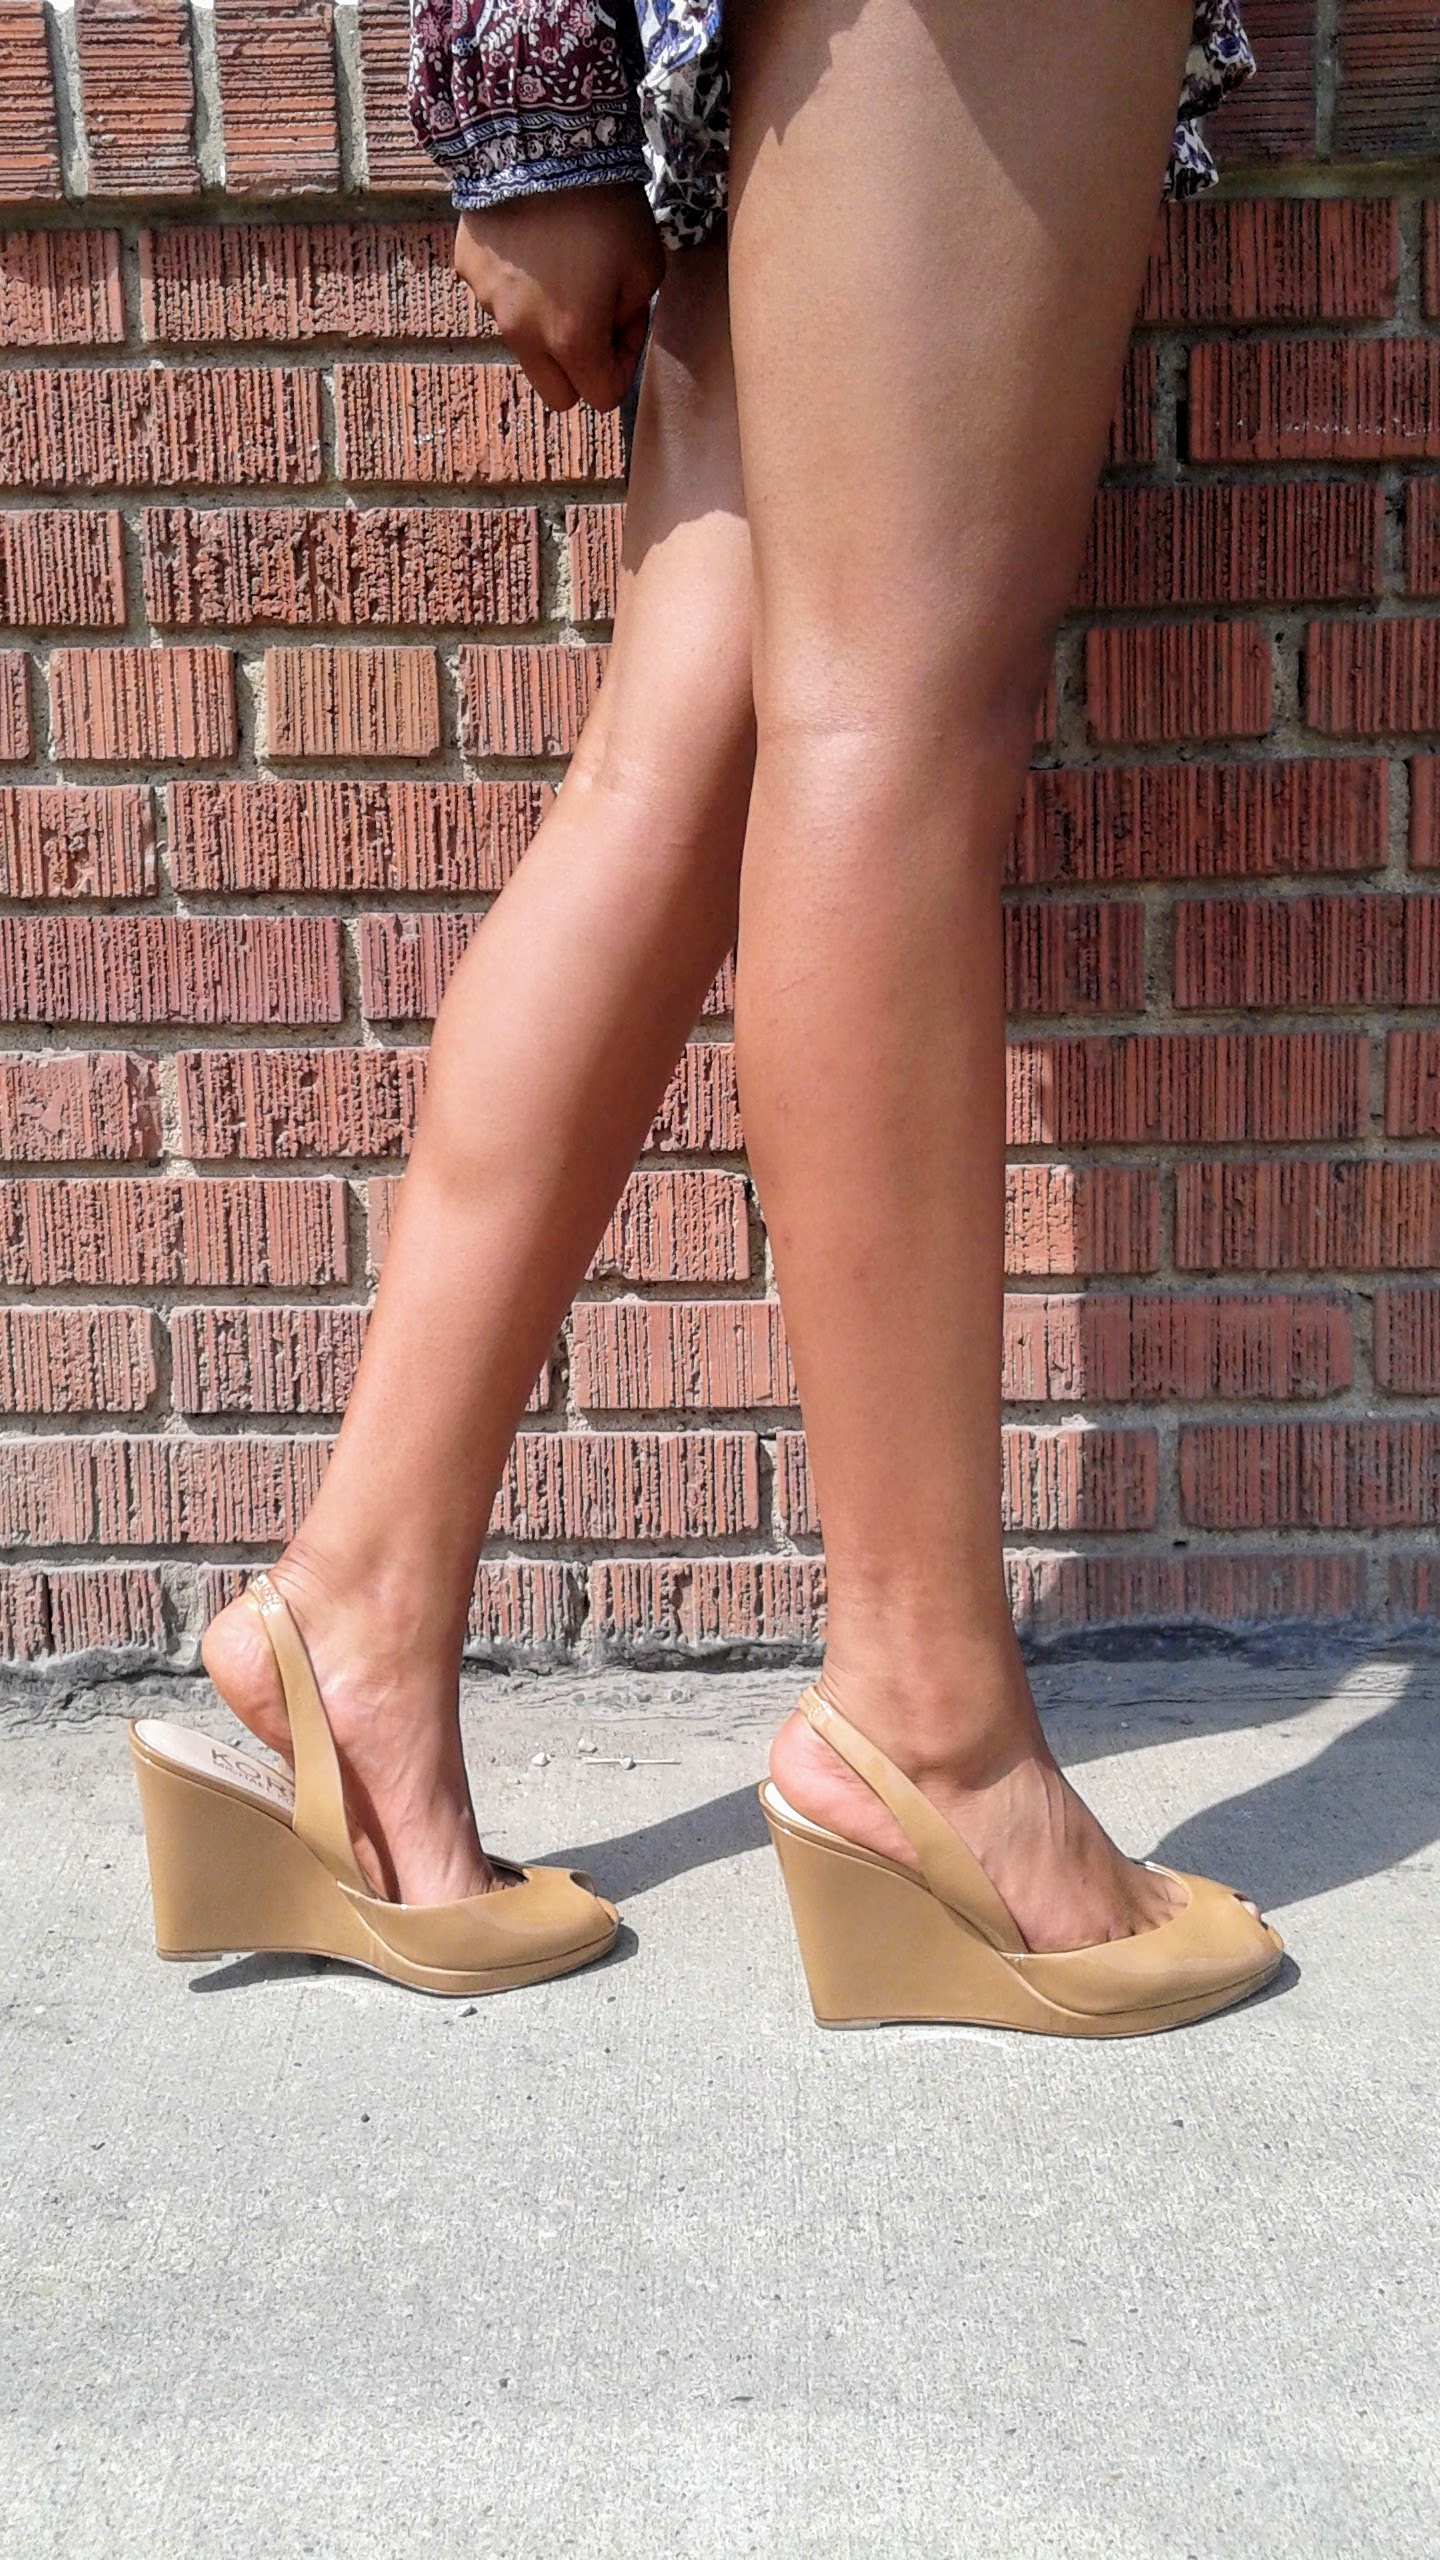 Michael Kors shoes; S8, $48